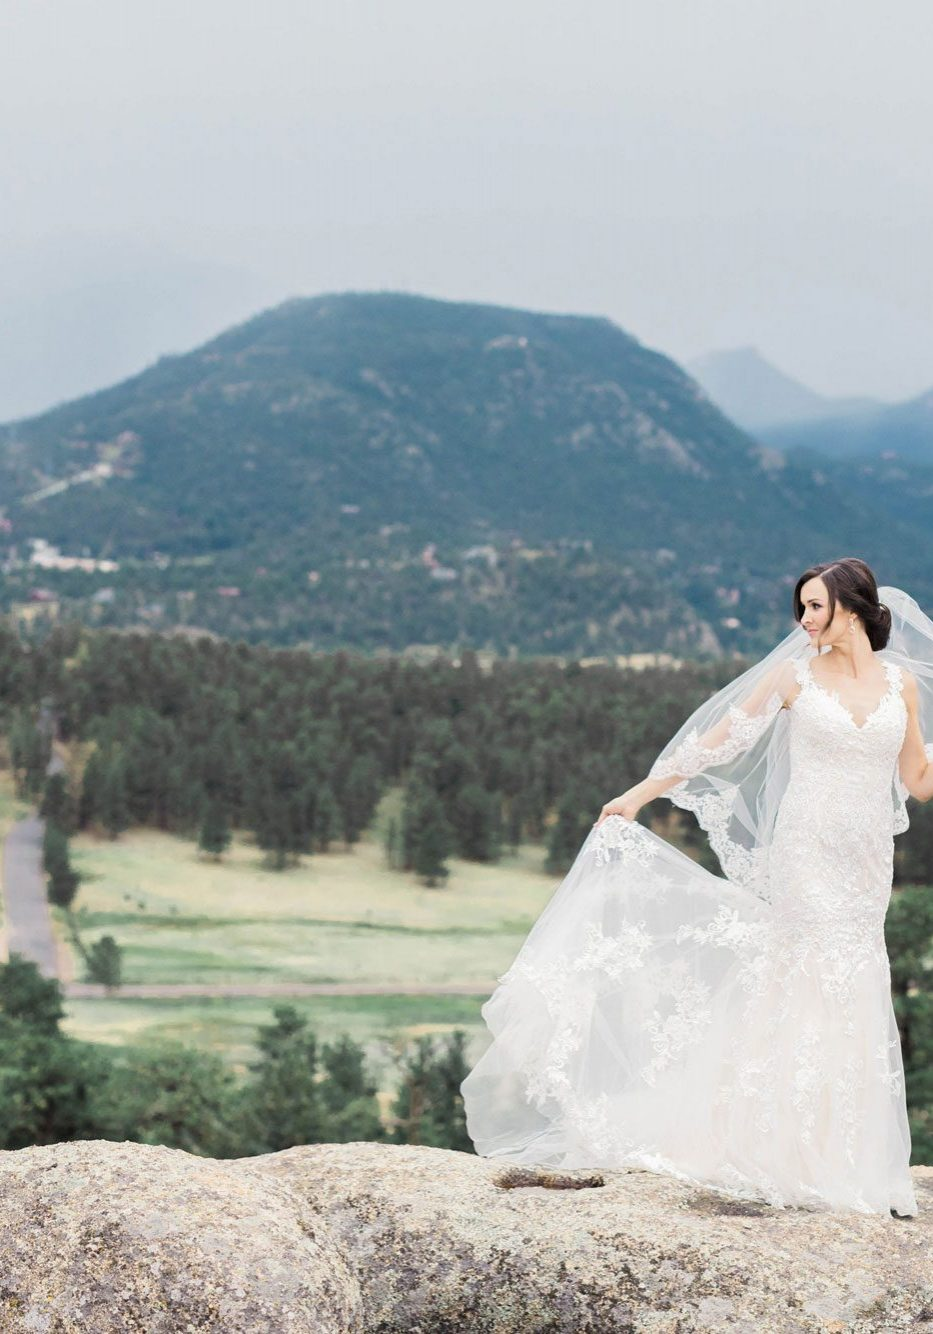 A Romantic Destination Wedding in Estes Park, Colorado